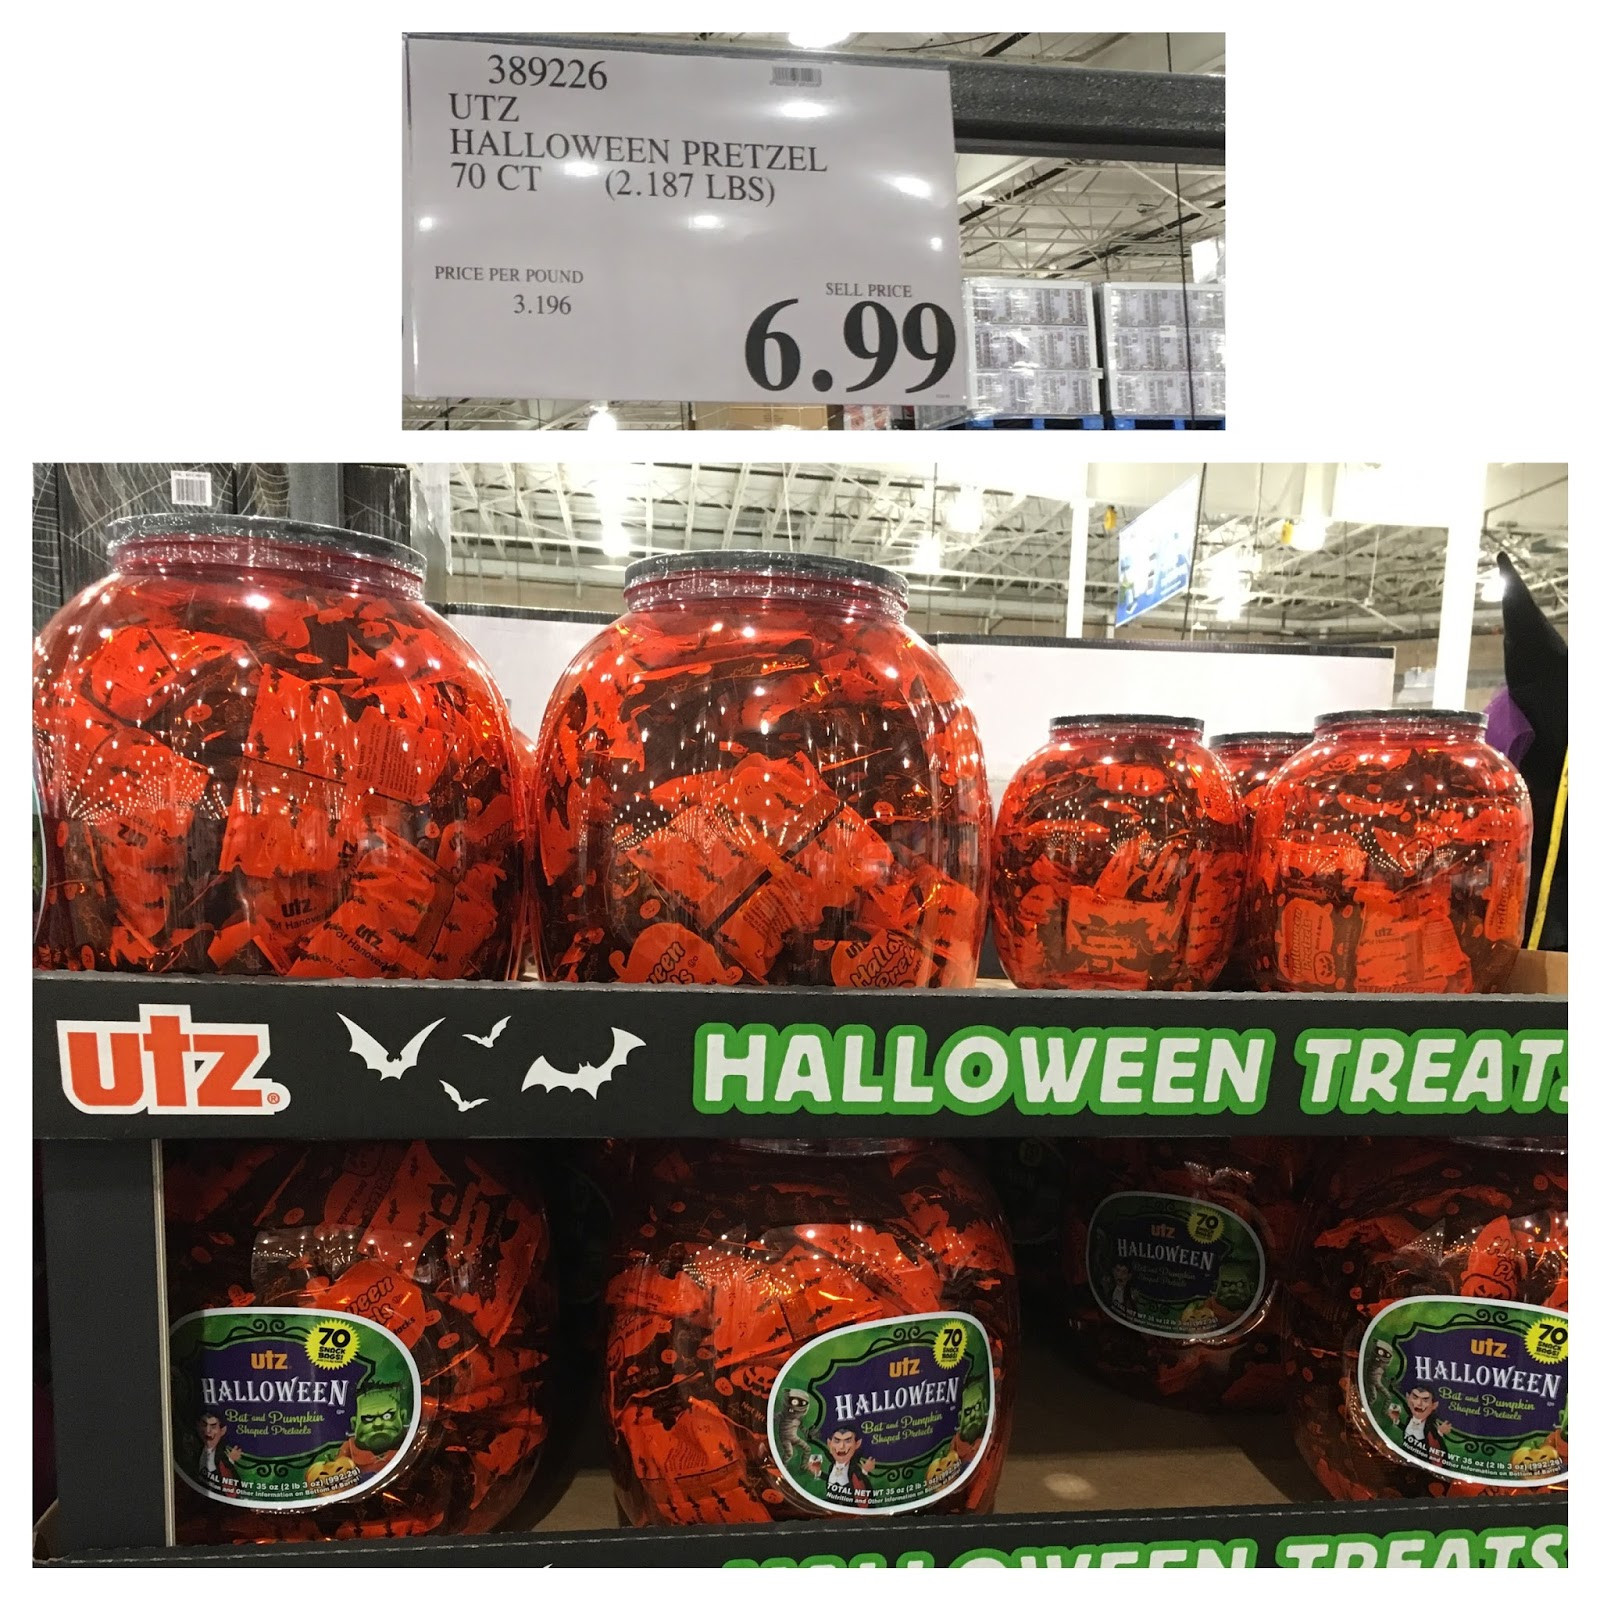 Utz Halloween Pretzels  the Costco Connoisseur September 2016